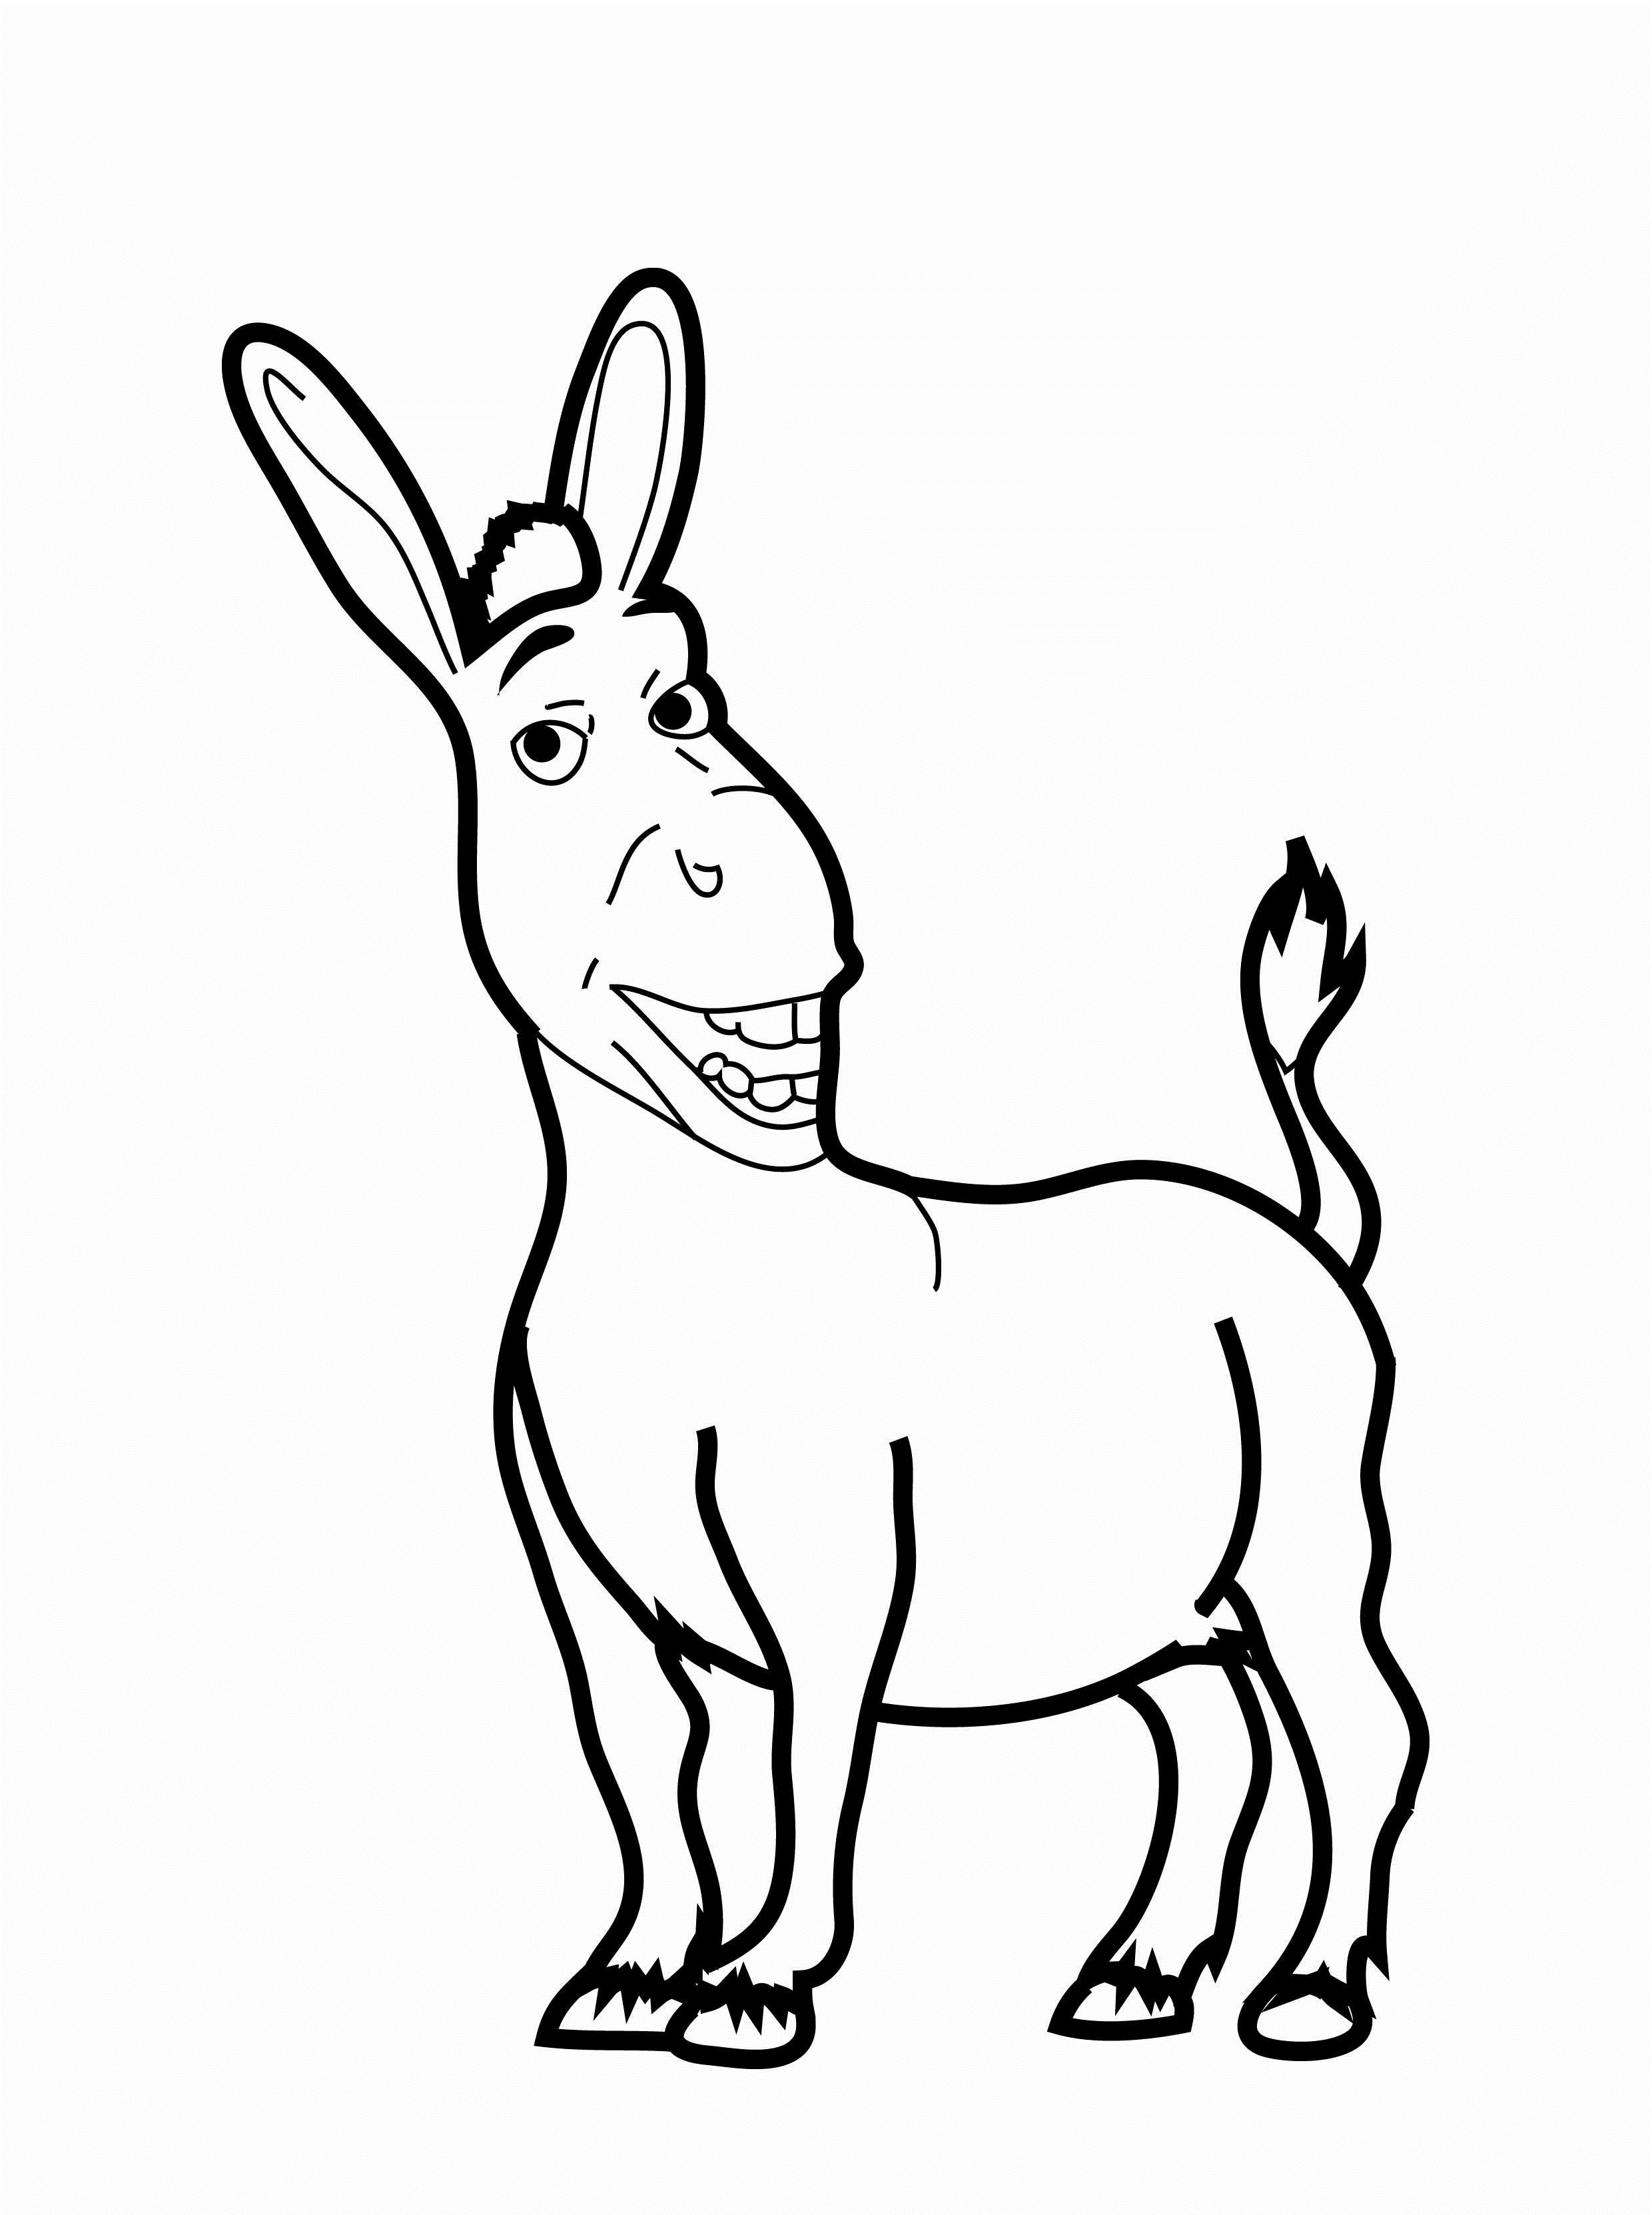 Donkey Drawing Easy at GetDrawings.com | Free for personal use ...